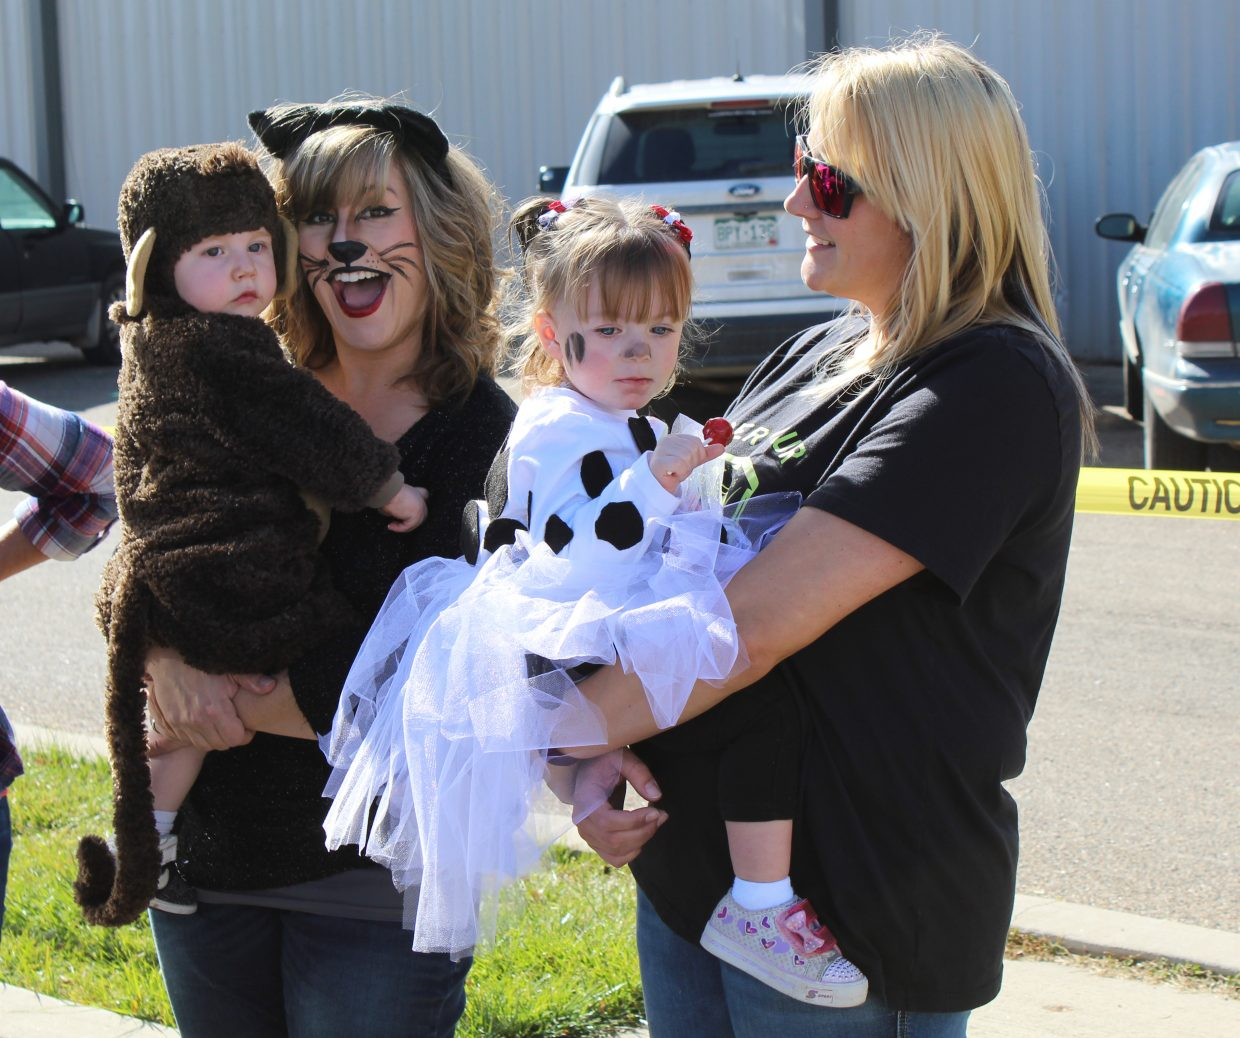 Linda and Jacob Foulk, left, and Chantae and Paisley Abney show off their costumes during the Trunk or Treat event, held Saturday at Thunder Rolls Bowling Center. A Rock-N-Bowl Halloween party followed Saturday evening.